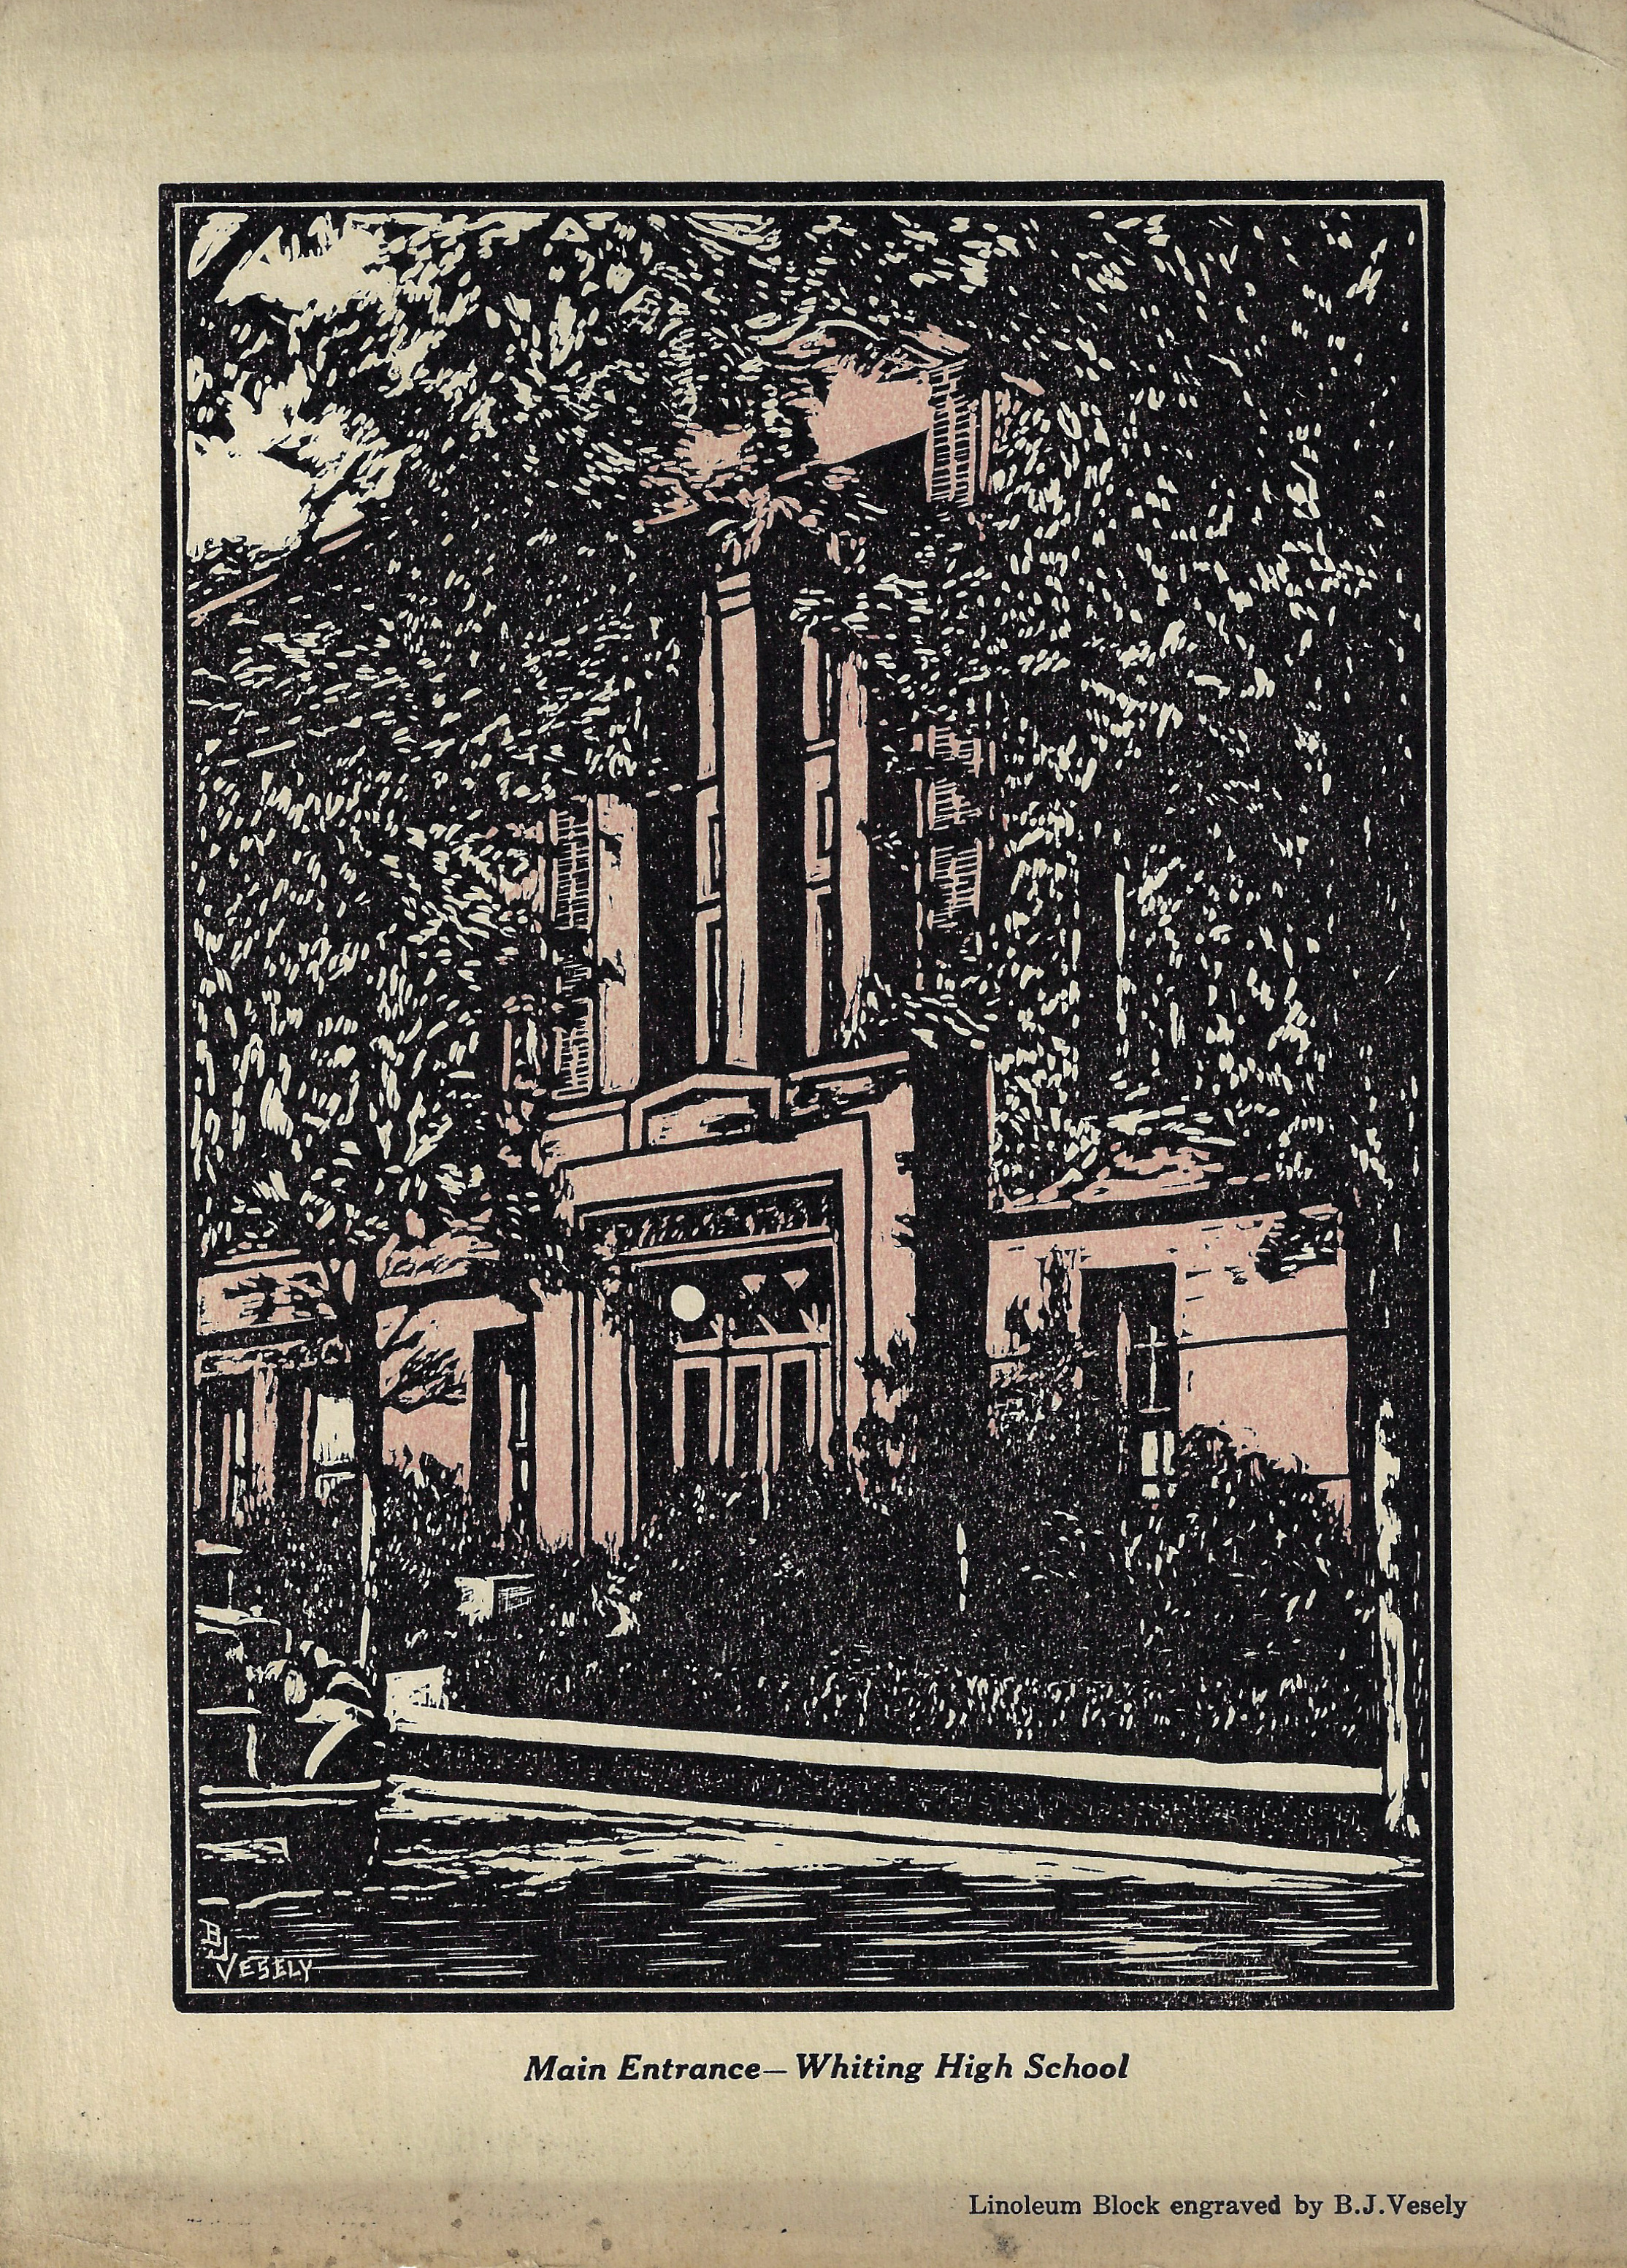 A woodcut engraved by Bernard J. Vesely showing the entrance to Whiting High School.